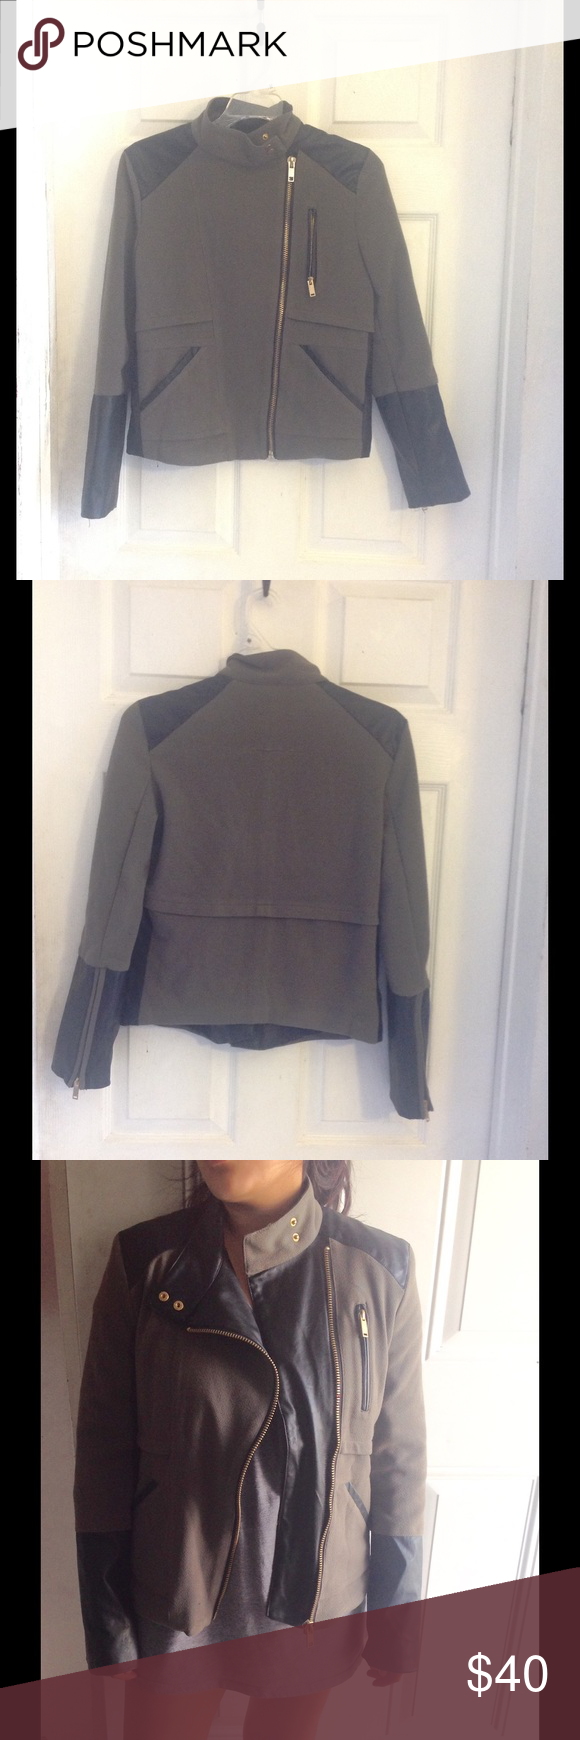 "ZARA ''Leather"" Jacket Gently used. Very clean, no flaws. Size tag is missing. Stretchy Zara Jackets & Coats"